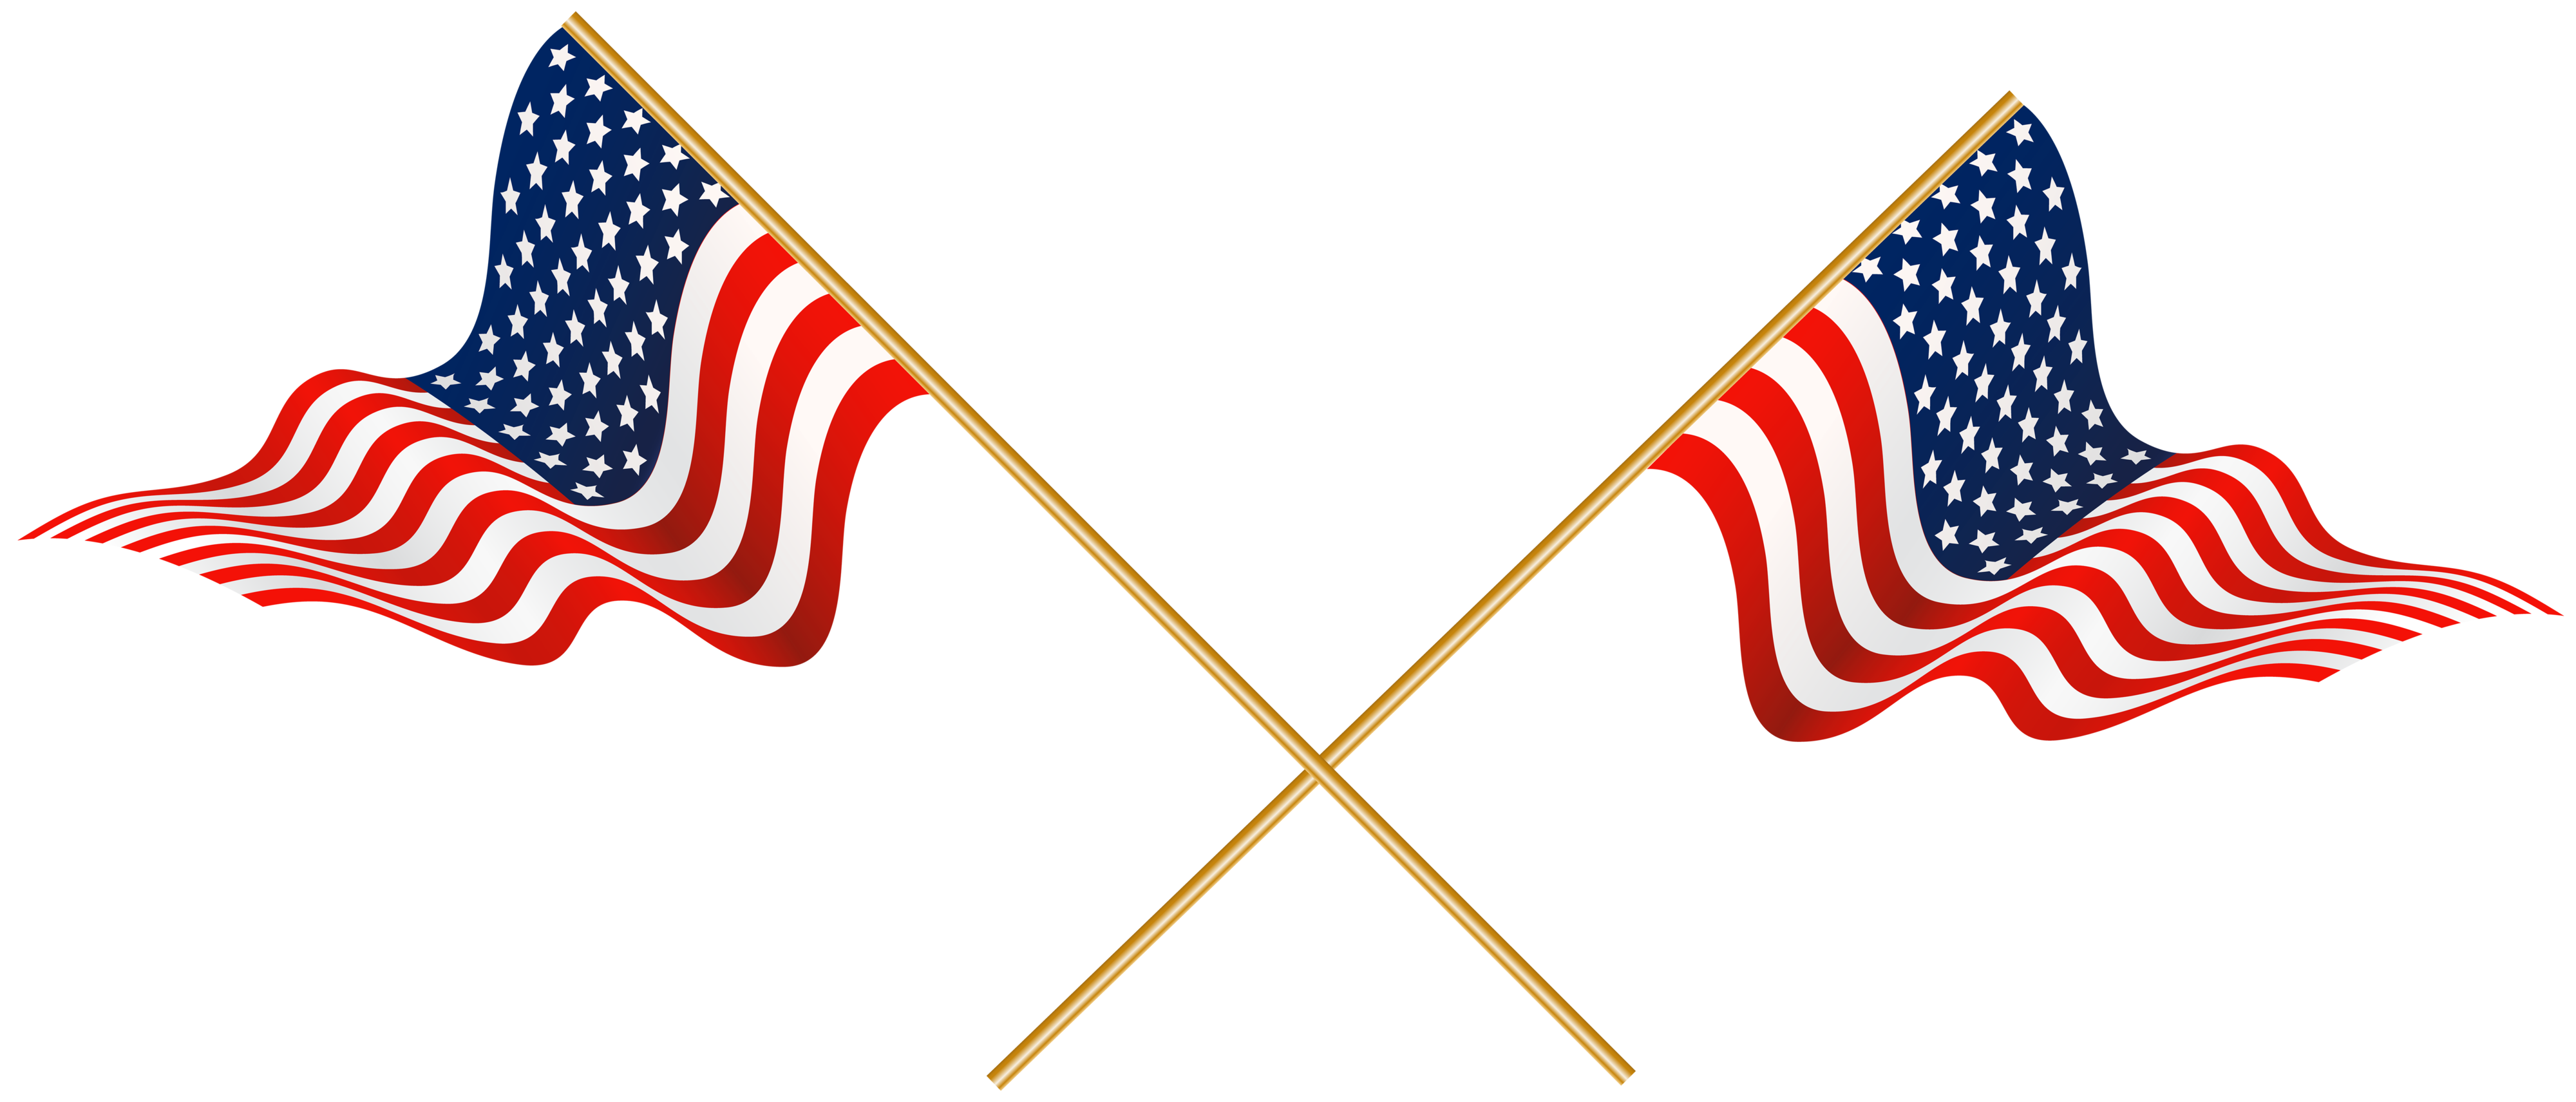 USA Crossed Flags Transparent PNG Clip Art